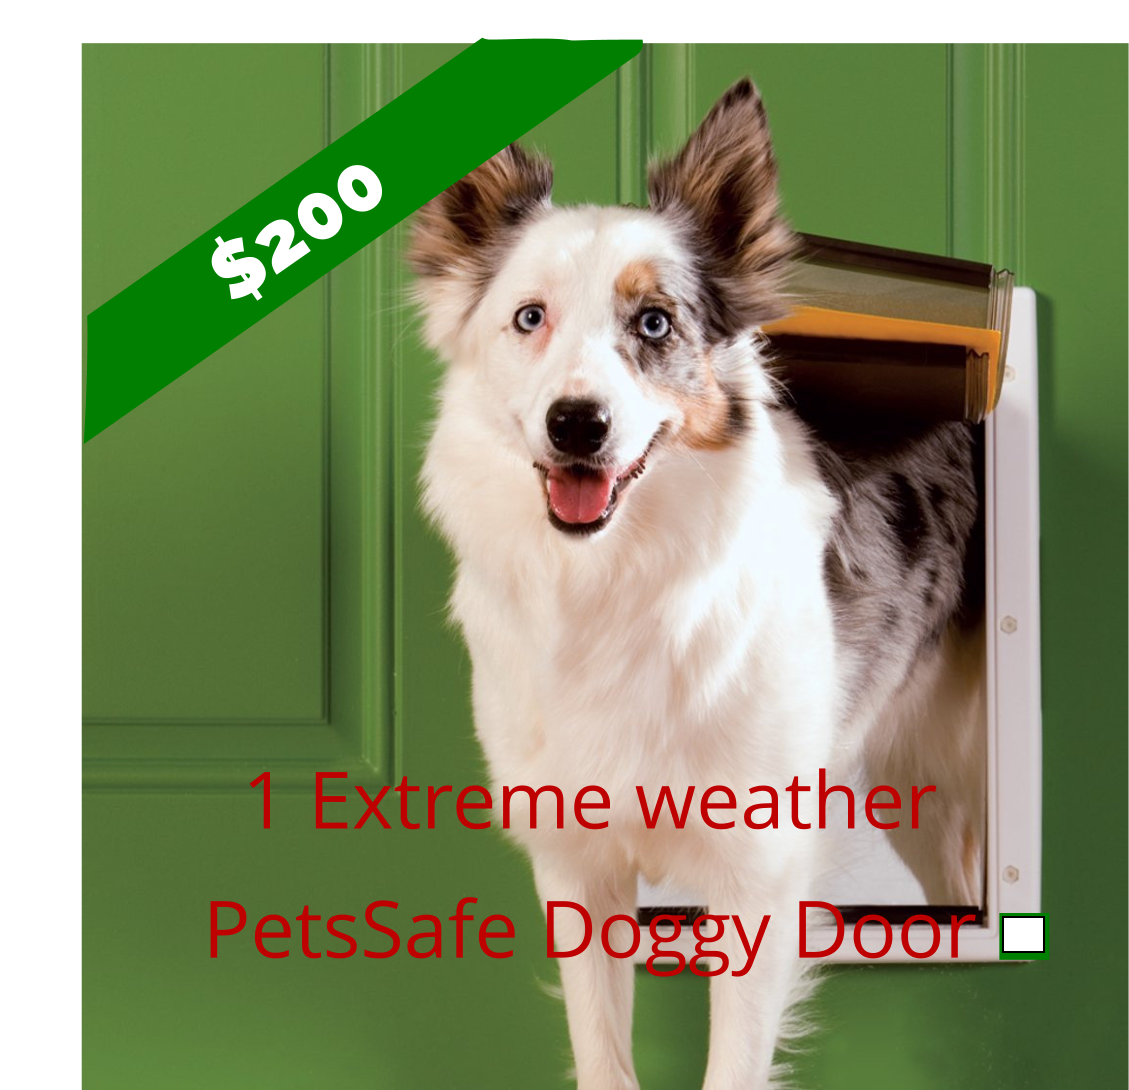 Extreme Weather Doggy Doors